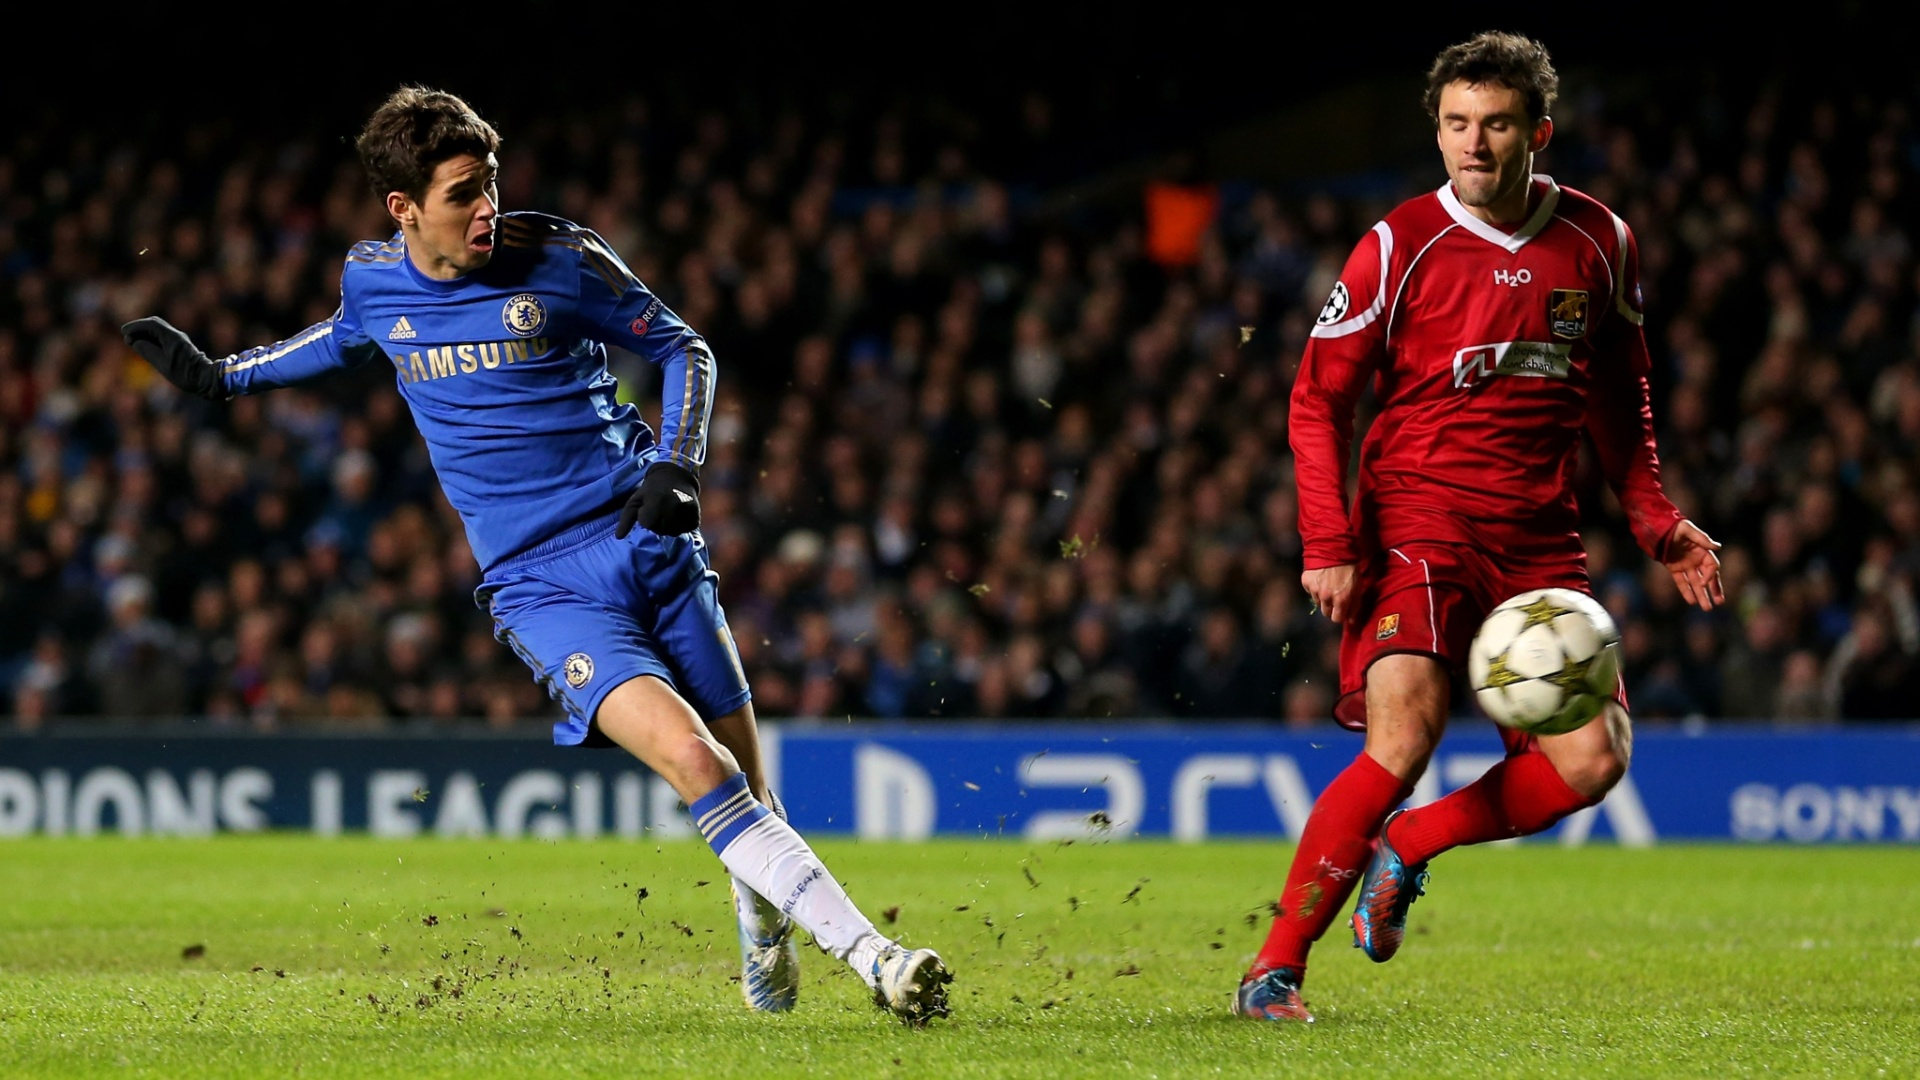 05.dez.2012 - Brasileiro Oscar bate para marcar o sexto gol do Chelsea contra o Nordsjaelland, pela Liga dos Campees